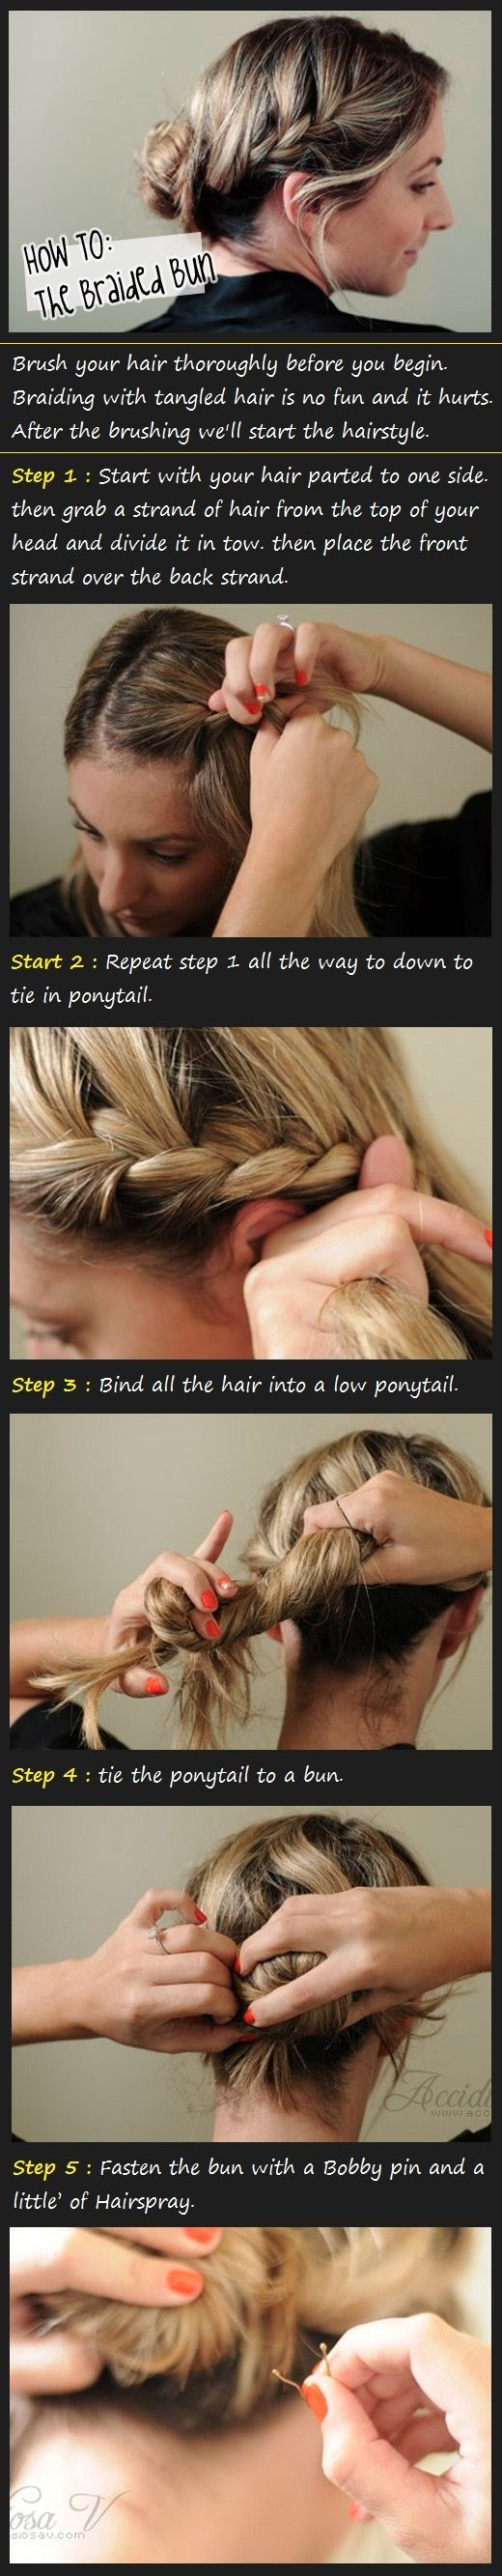 The Braided Bun Tutorial: Hair Ideas, Braids Hairstyles, Braided Buns, Hair Tutorials, Buns Hairstyles, Beautiful Tutorials, Hairstyles Tutorials, Braids Buns Tutorials, Hair Style